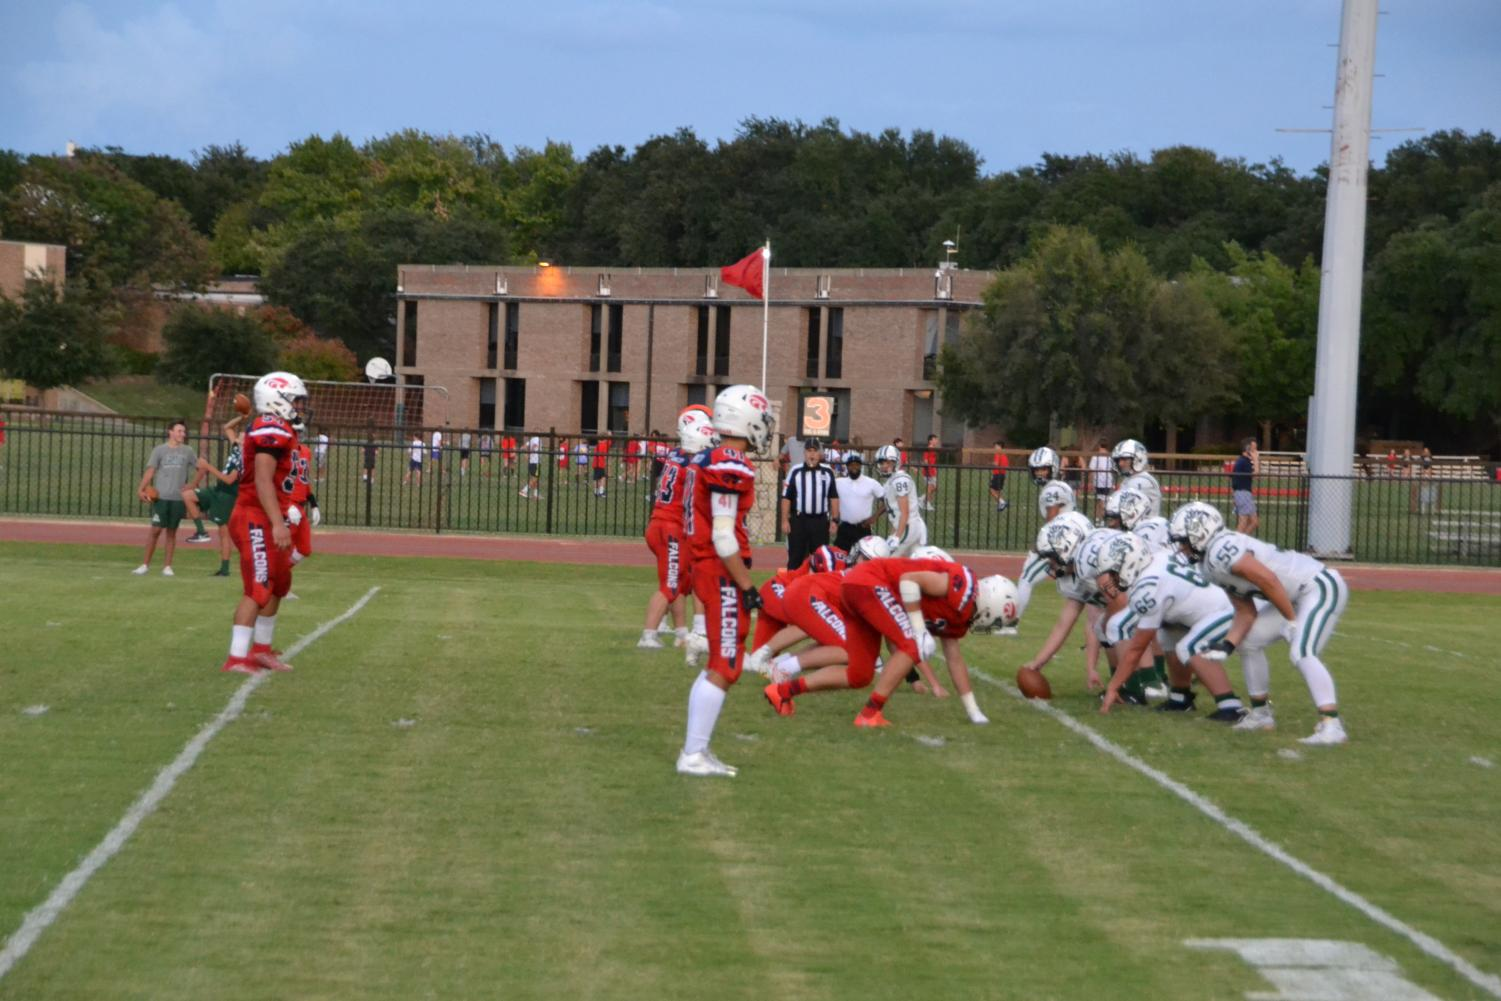 Falcons played John Cooper on Sept. 20 during the regular season and won 27-7.